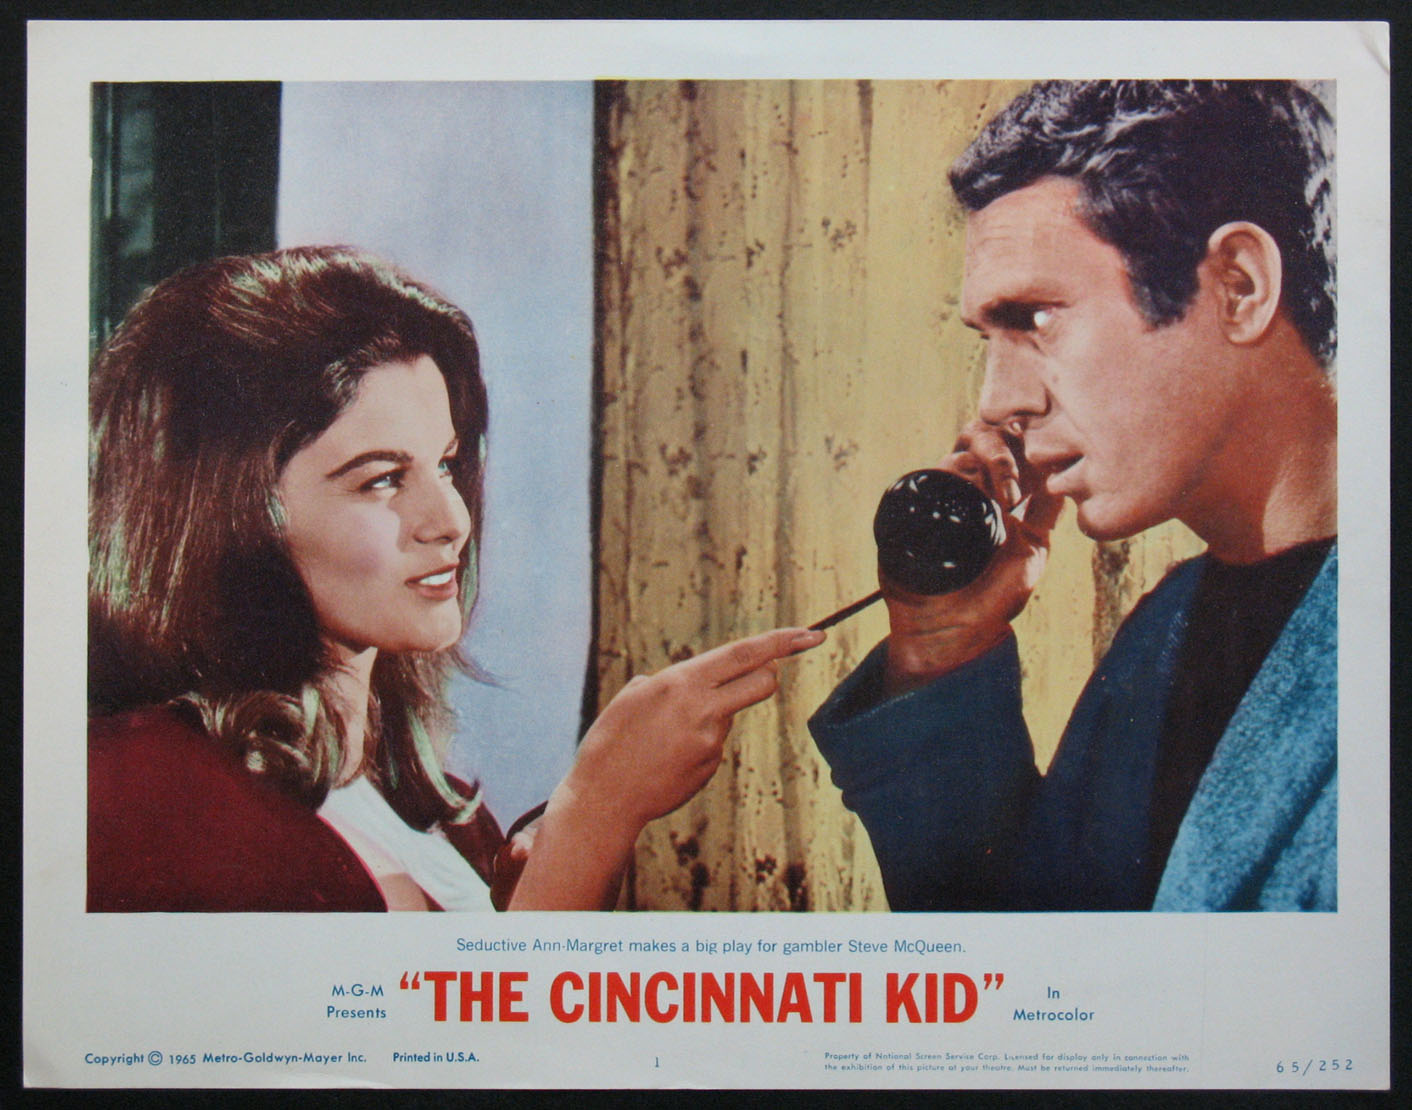 CINCINNATI KID, THE @ FilmPosters.com